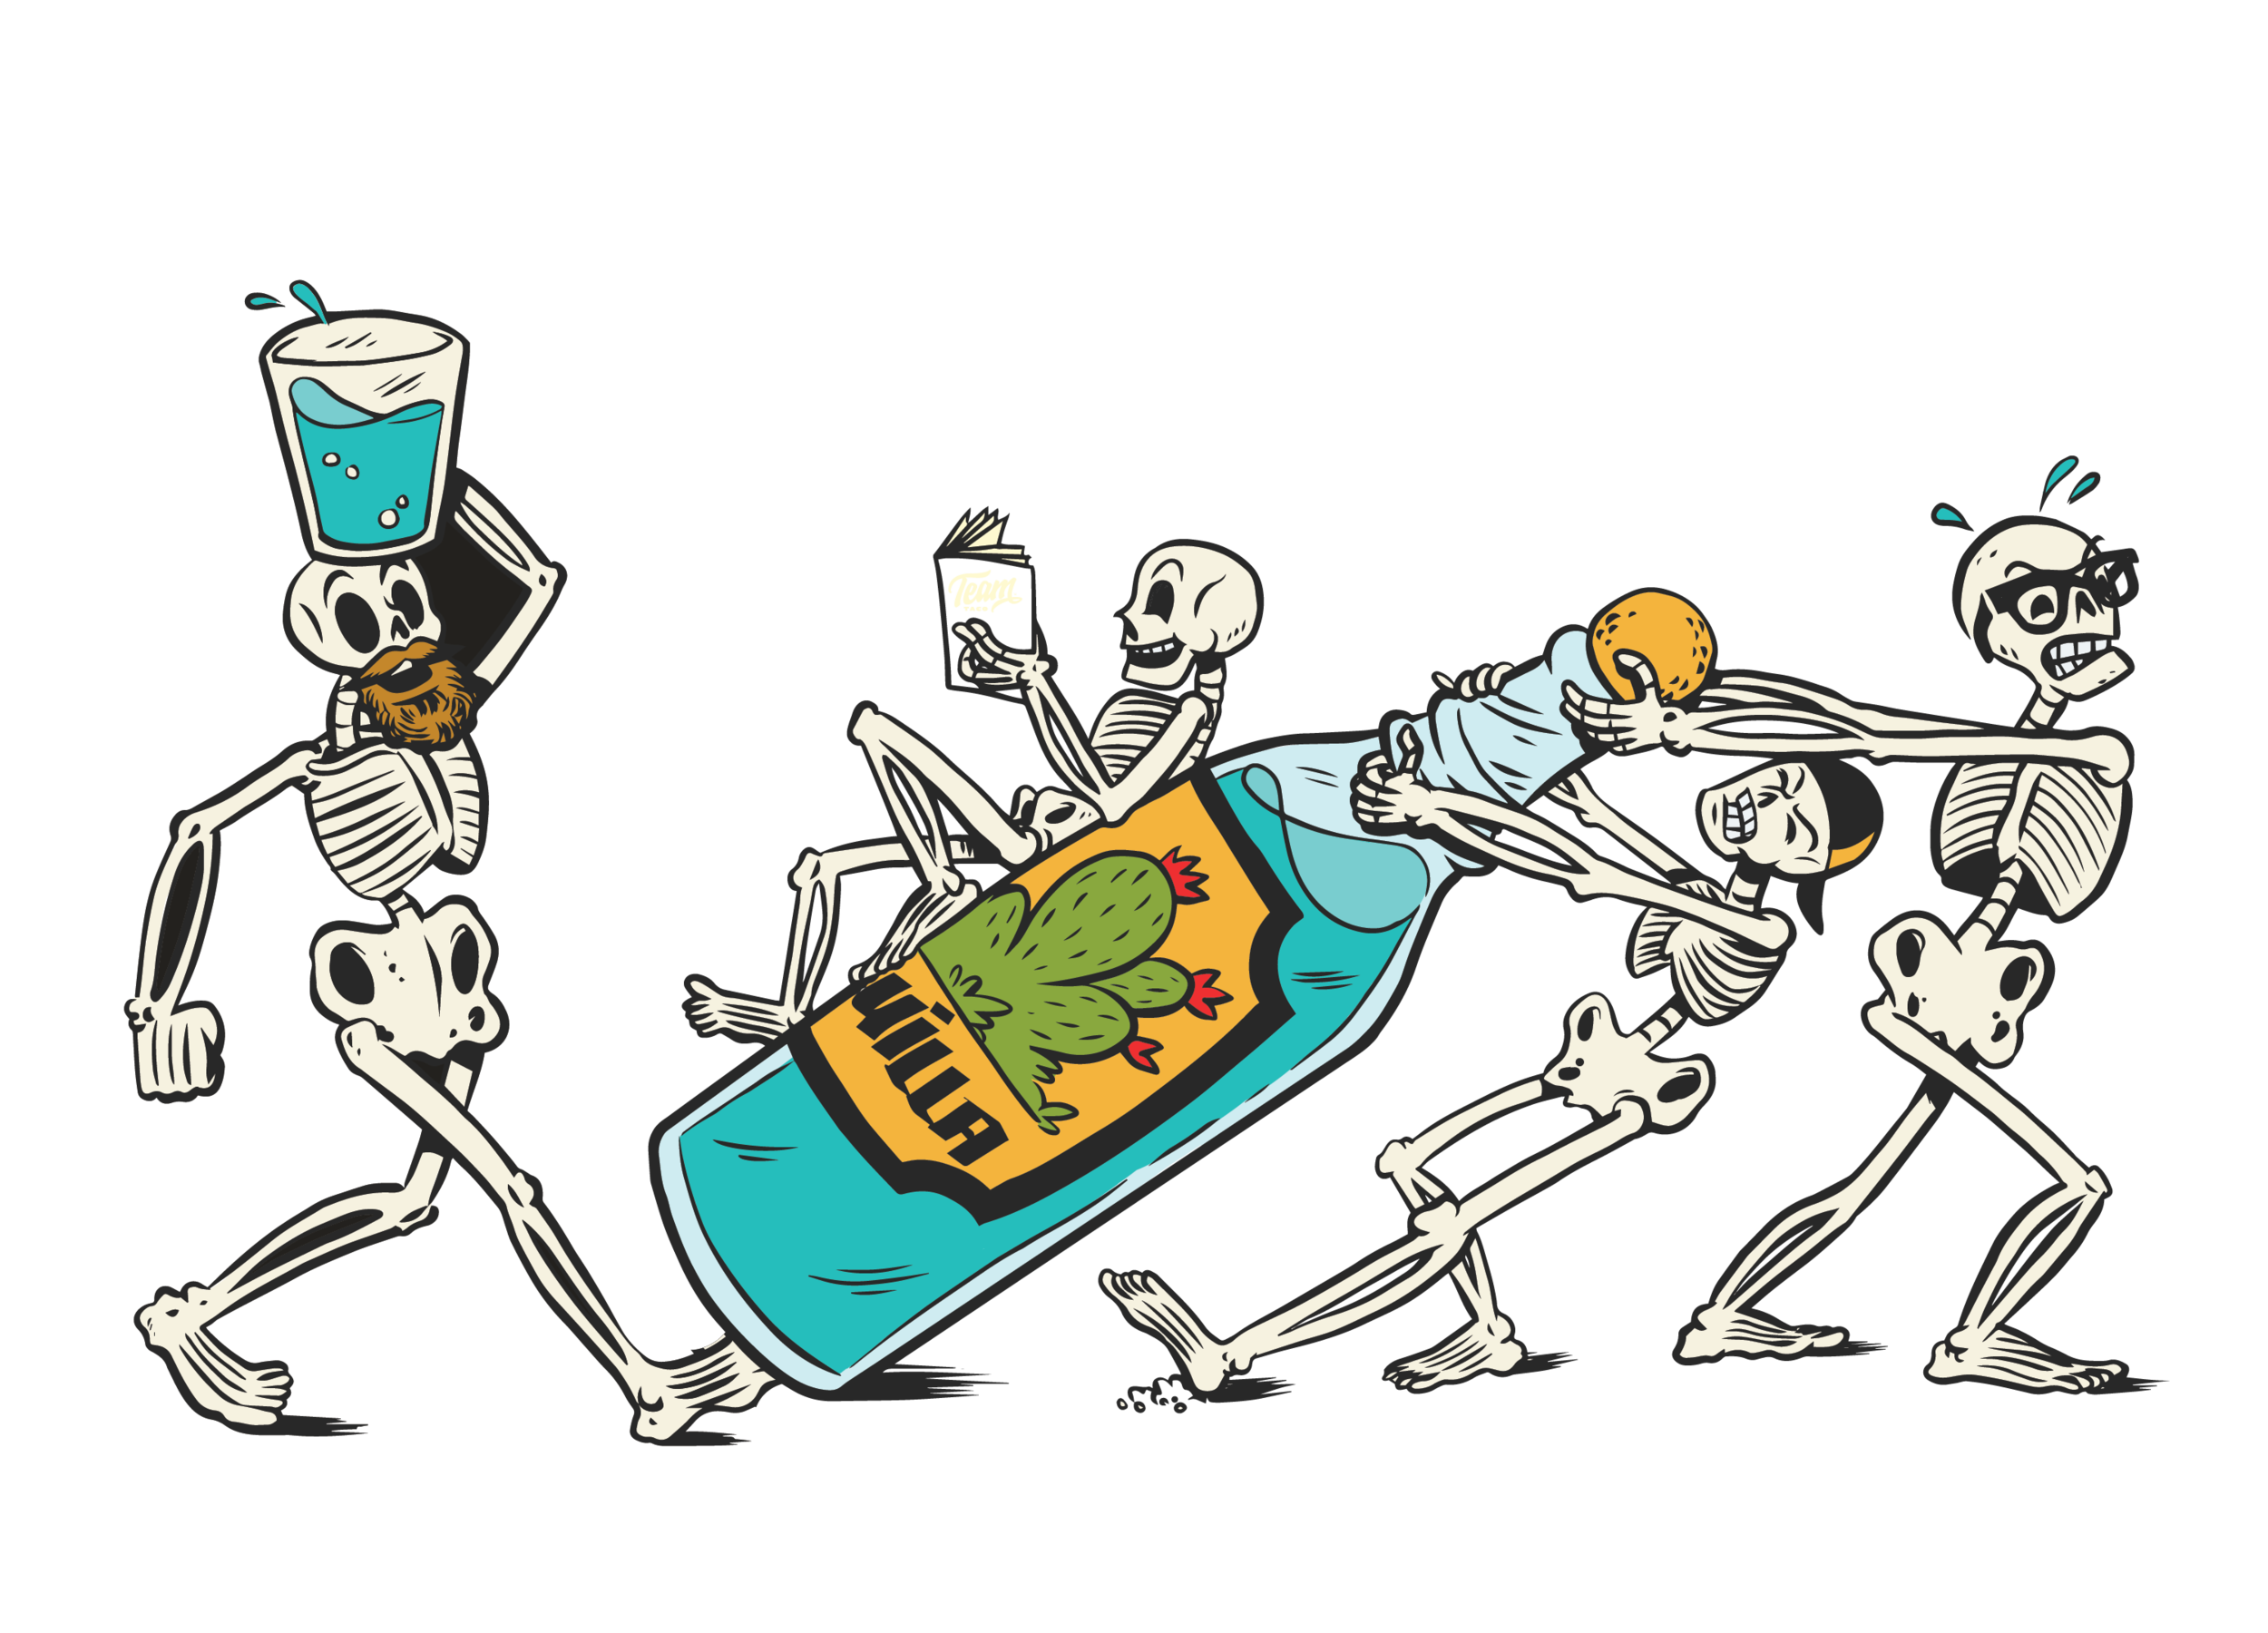 THE SKELETON CREW - Team Taco consists of 4 crew members. They run it thin, but you would never know it. We created The Skeleton Crew to pay homage to the 4 founders. Always down for a party, these 4 are working hard to have a good time.